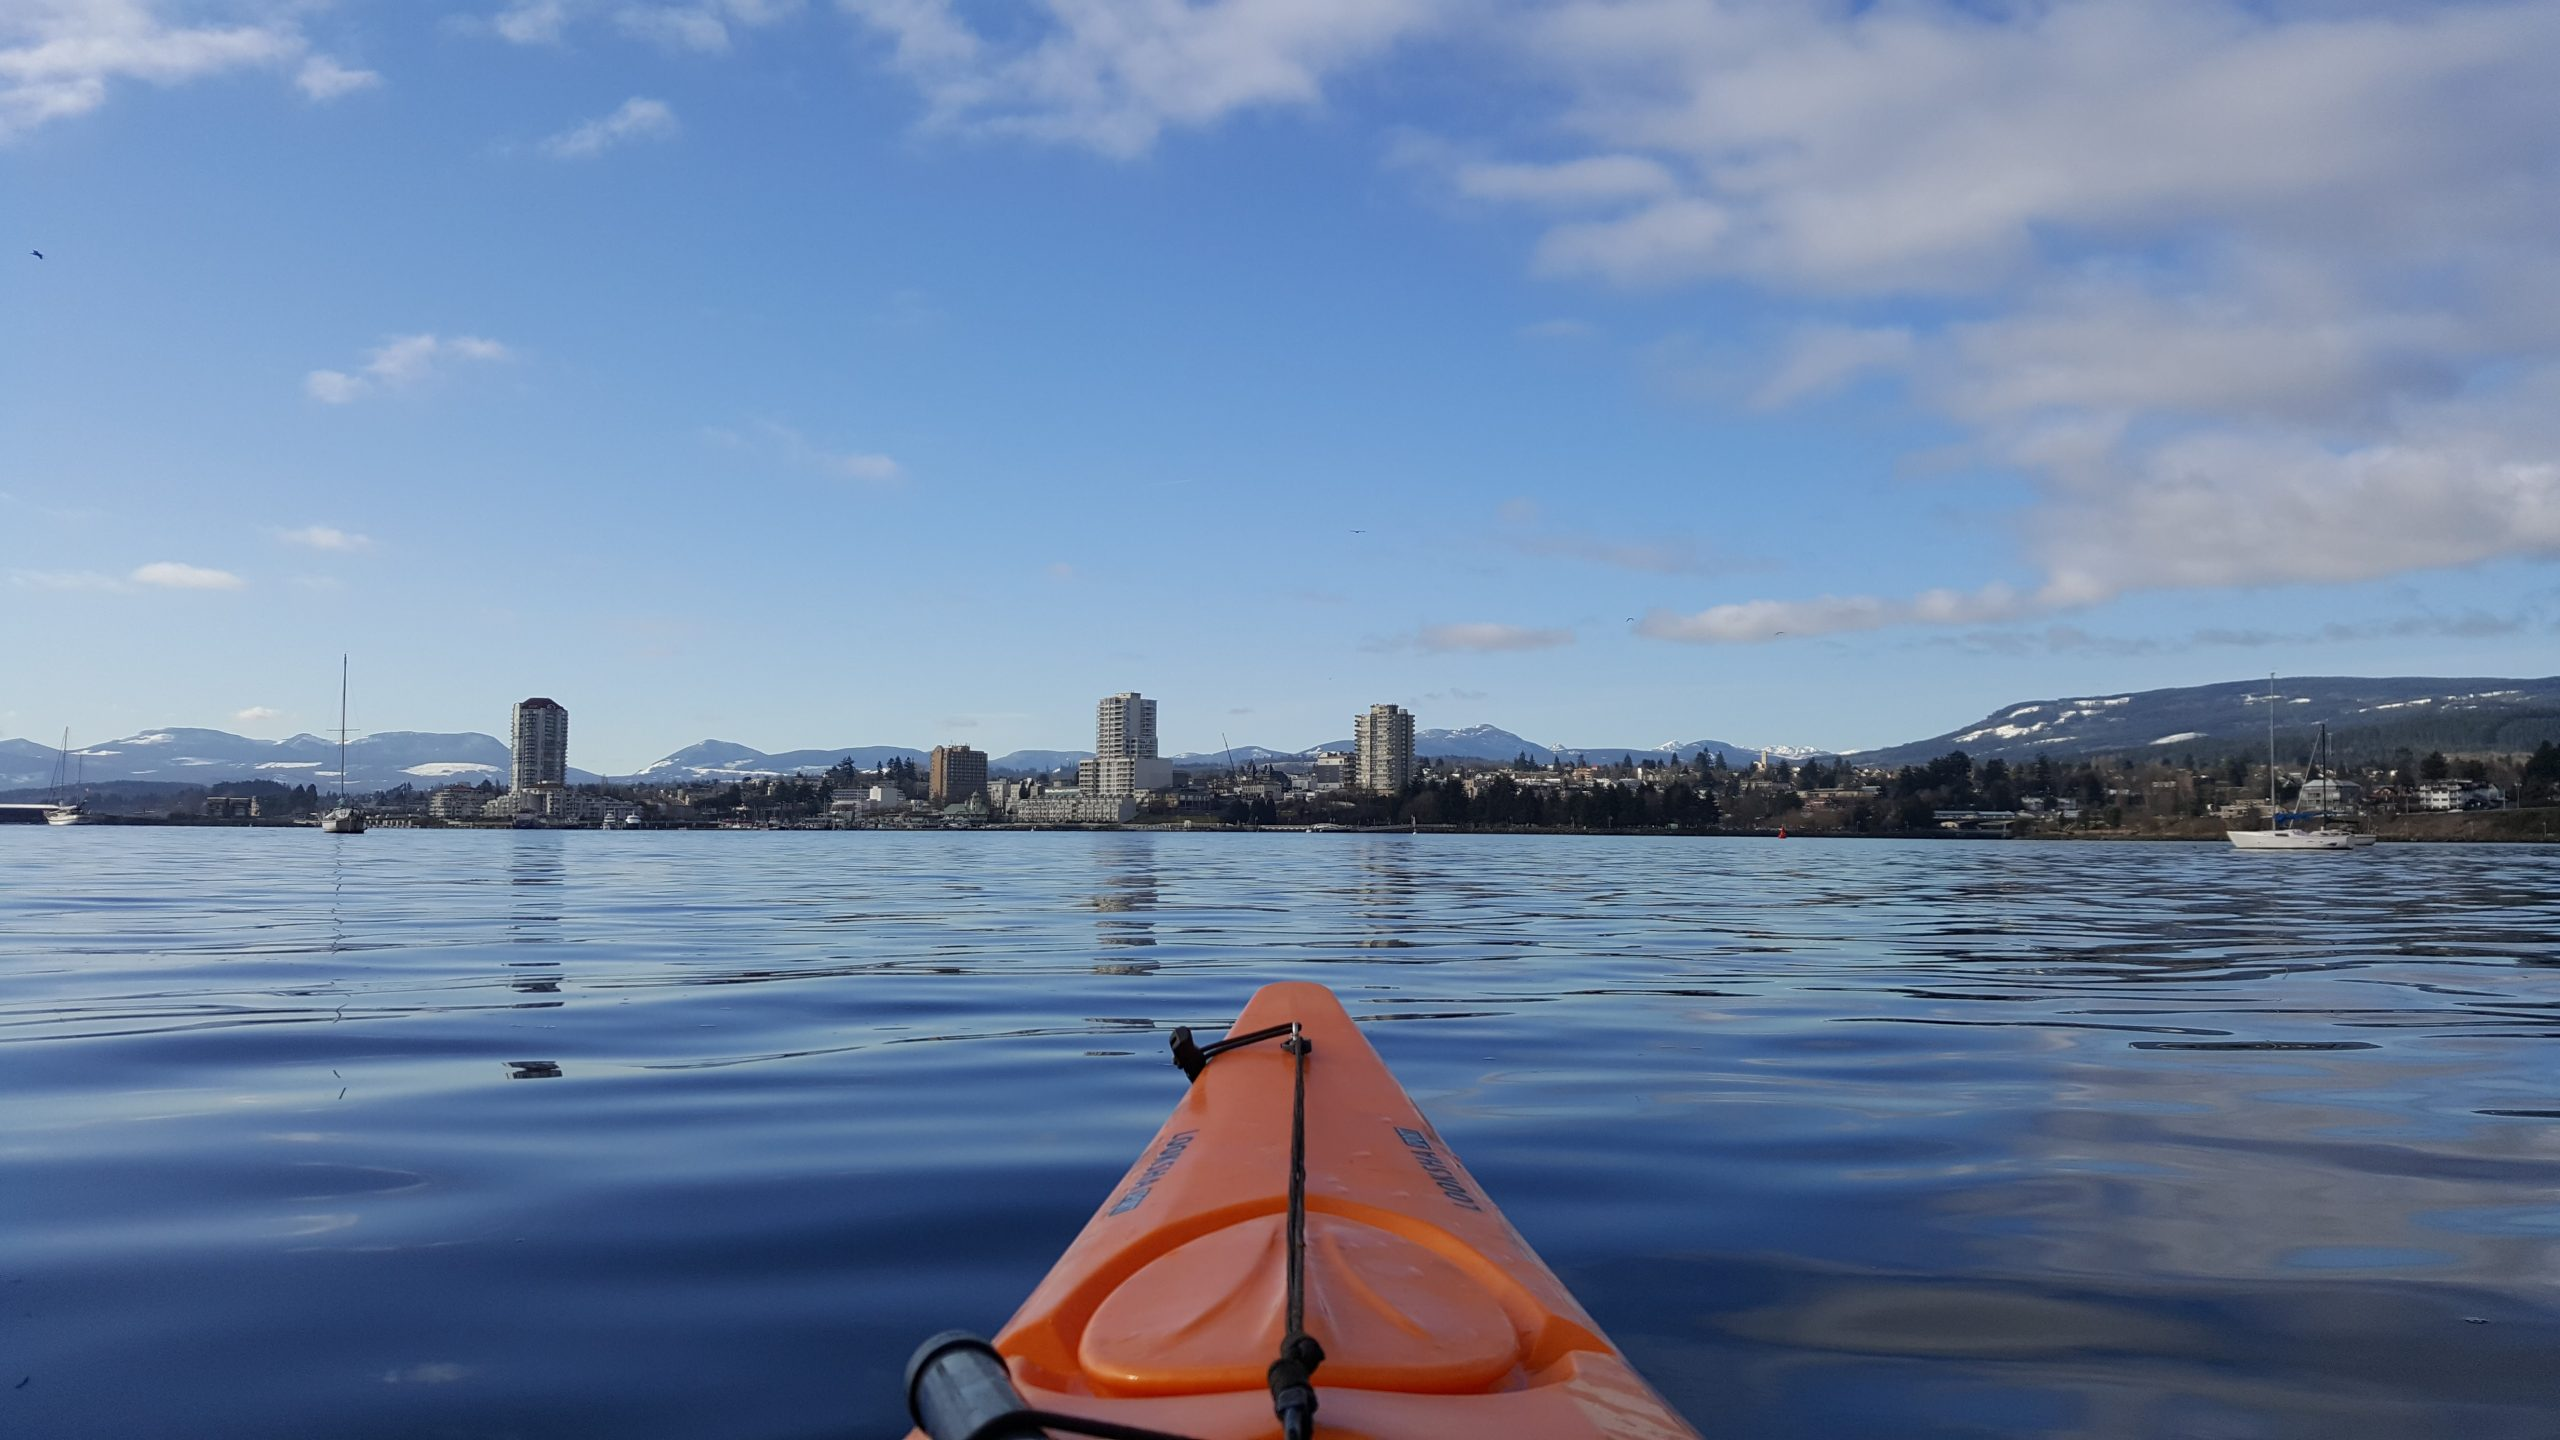 A perspective shot from a kayak, looking towards Nanaimo's downtown waterfront.